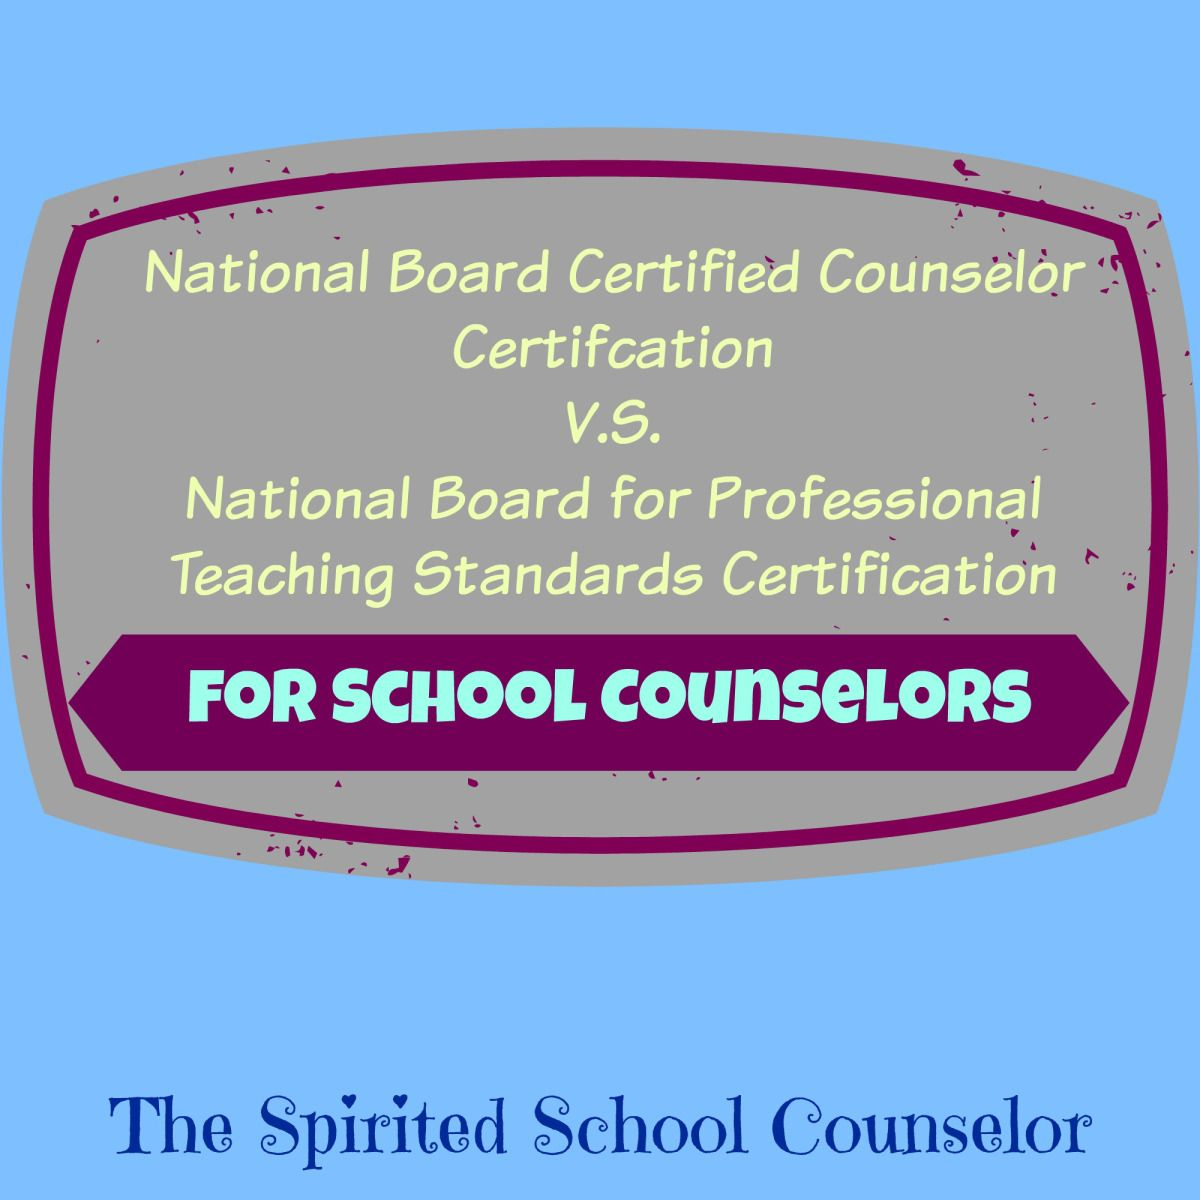 Nbcc vs nbpts for school counselors school counsellor national information about national board certified counseling certification vs national board for professional teaching standards certification for 1betcityfo Gallery